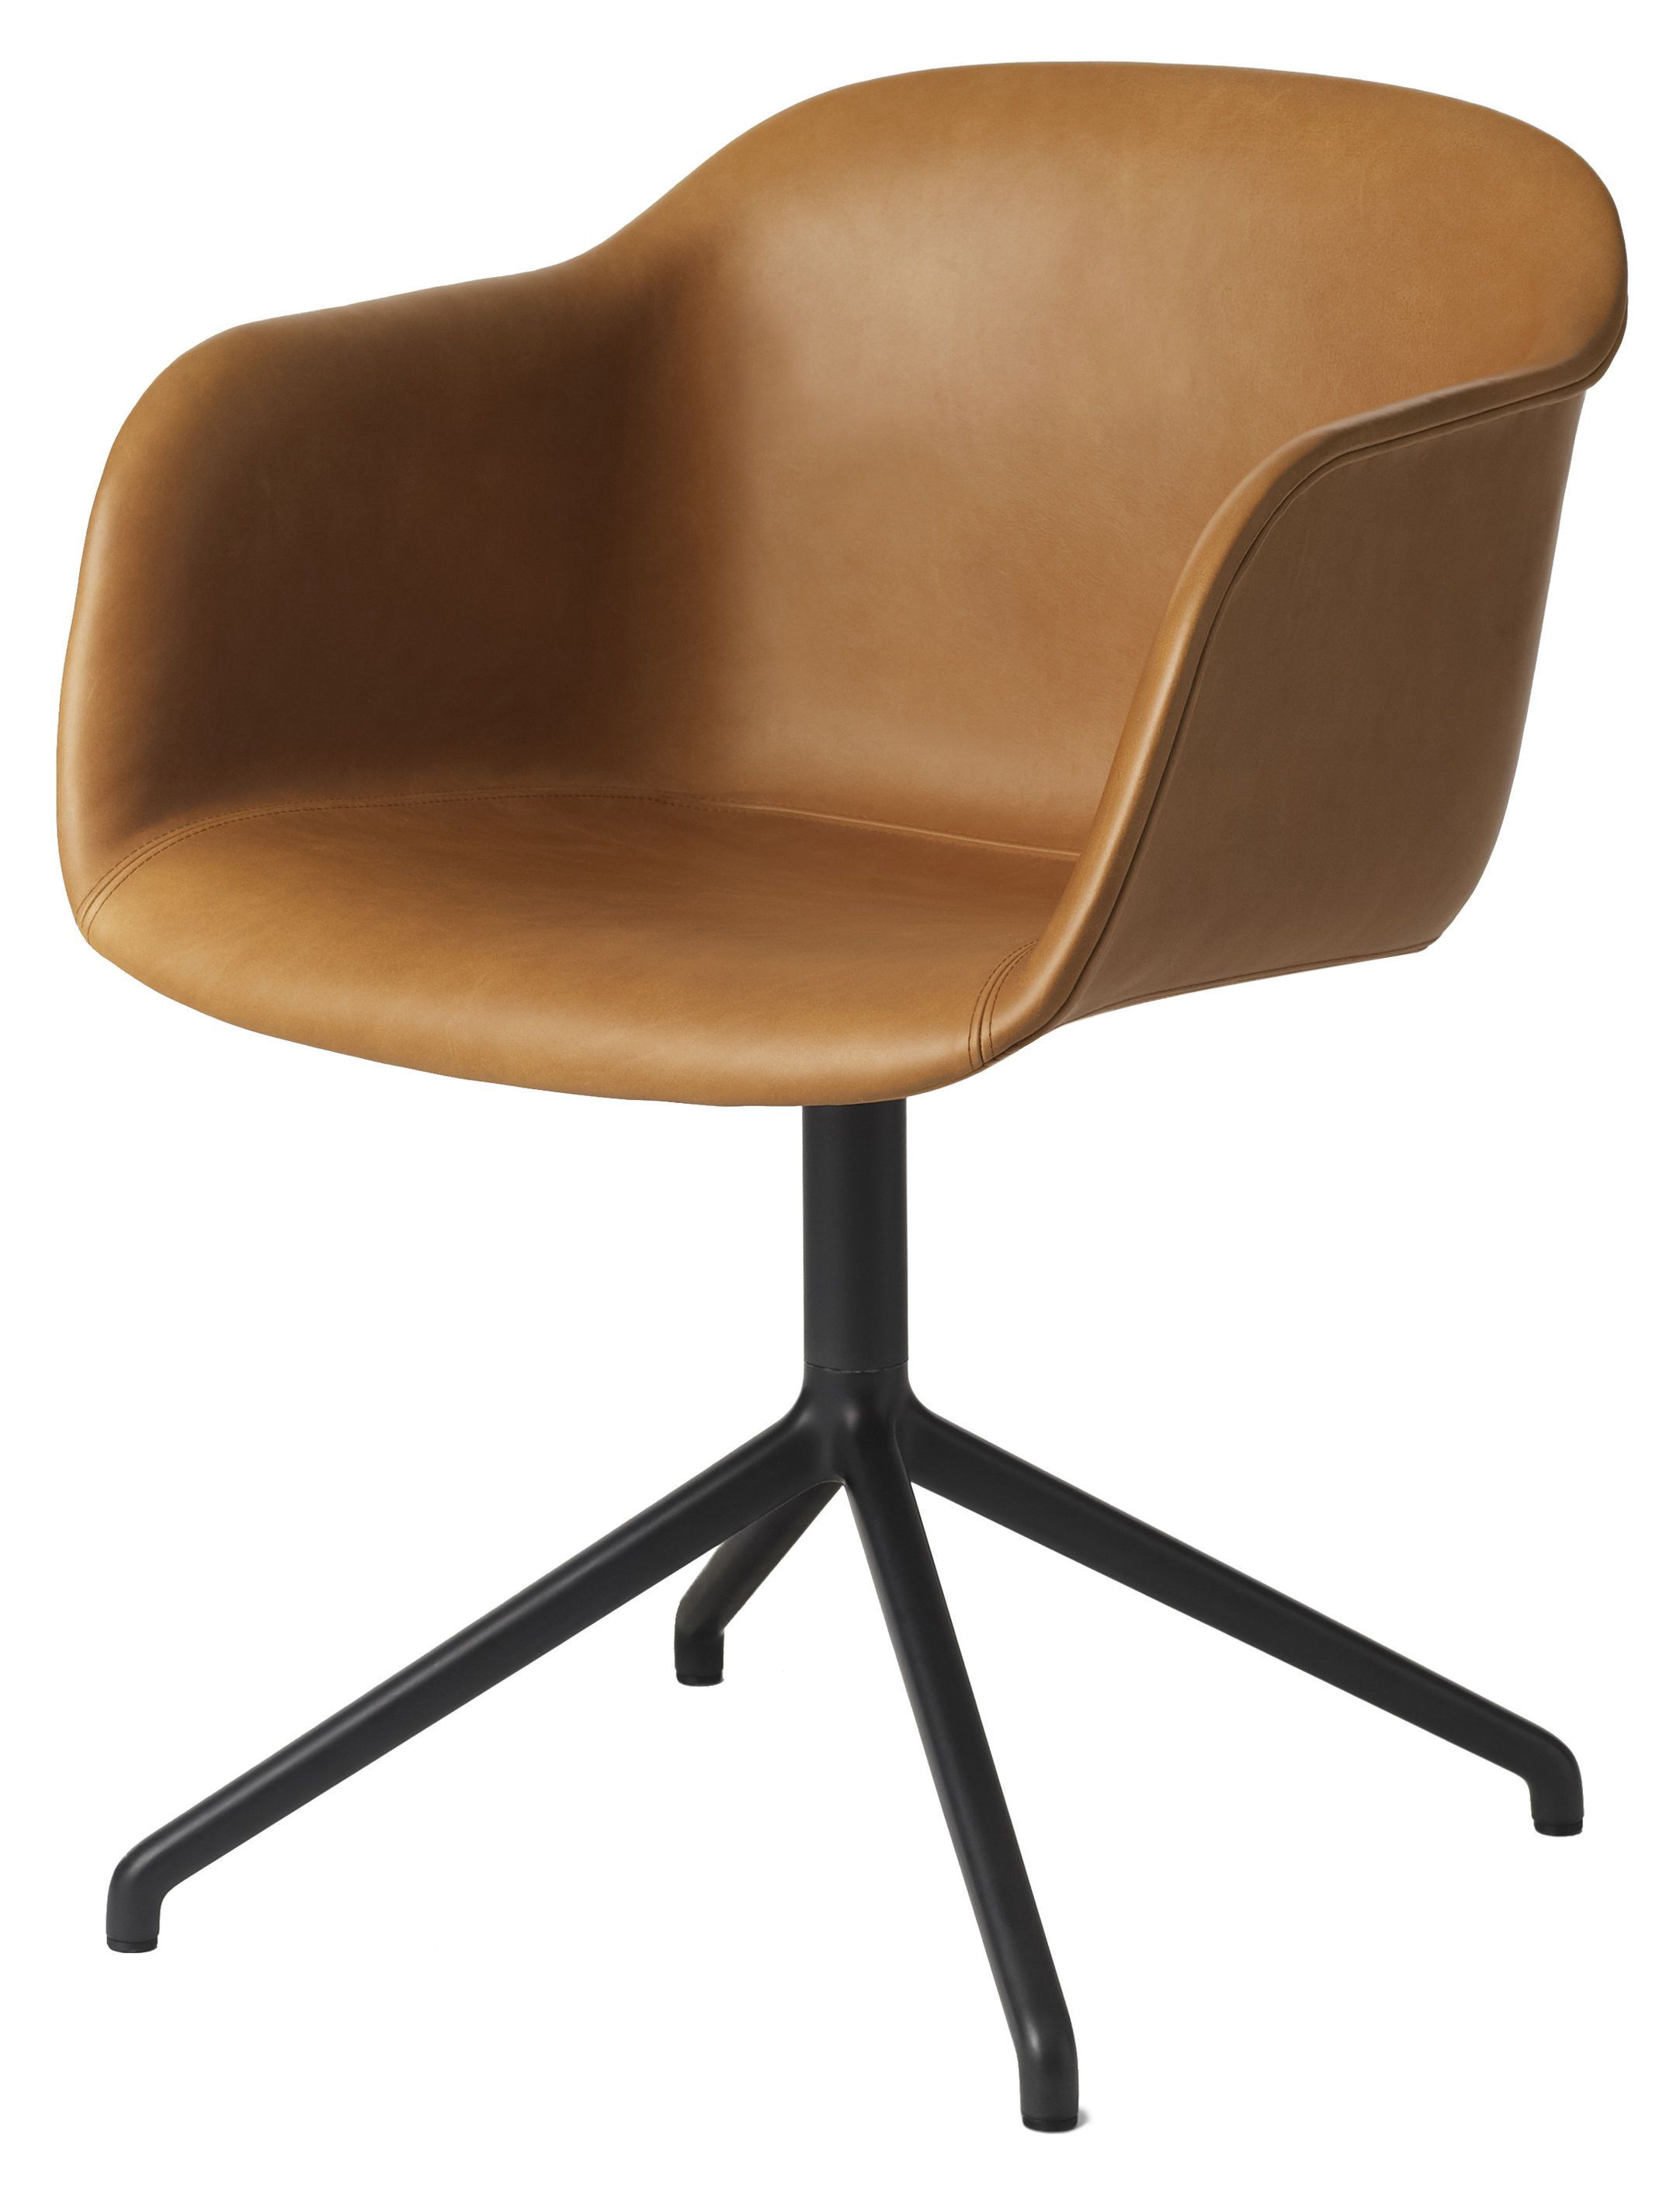 Furniture - Chairs - Fiber Swivel armchair - Padded / Leather by Muuto - Leather - Structure : Black - Leather, Matériau composite recyclé, Painted steel